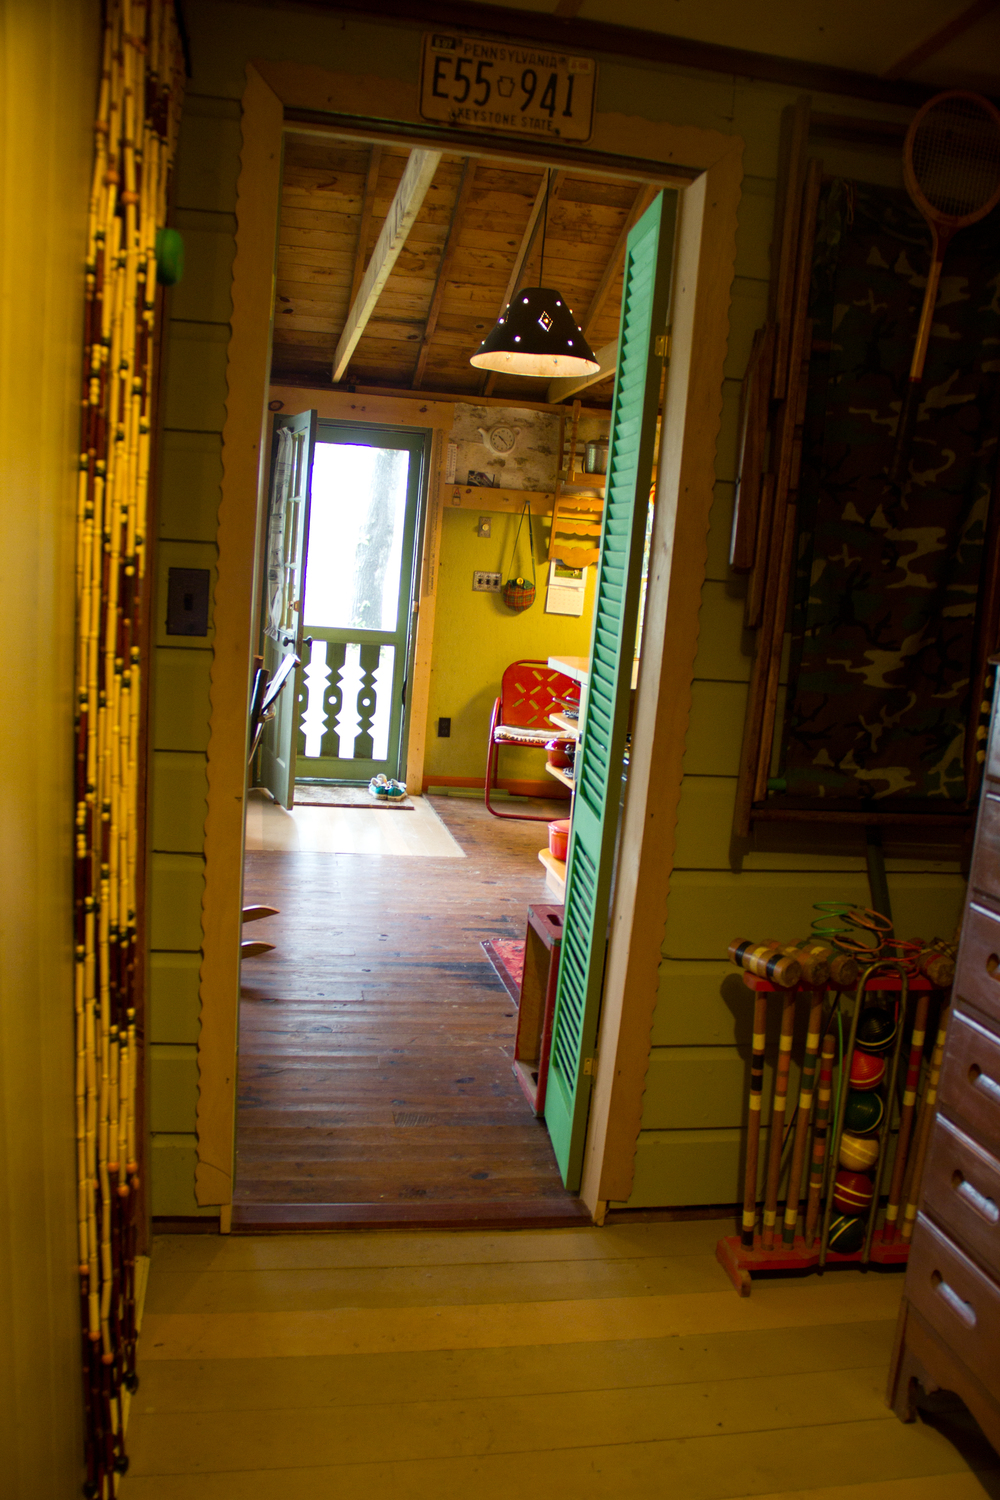 The hallway looking into the main room (by me, with some major distortion going on here!)